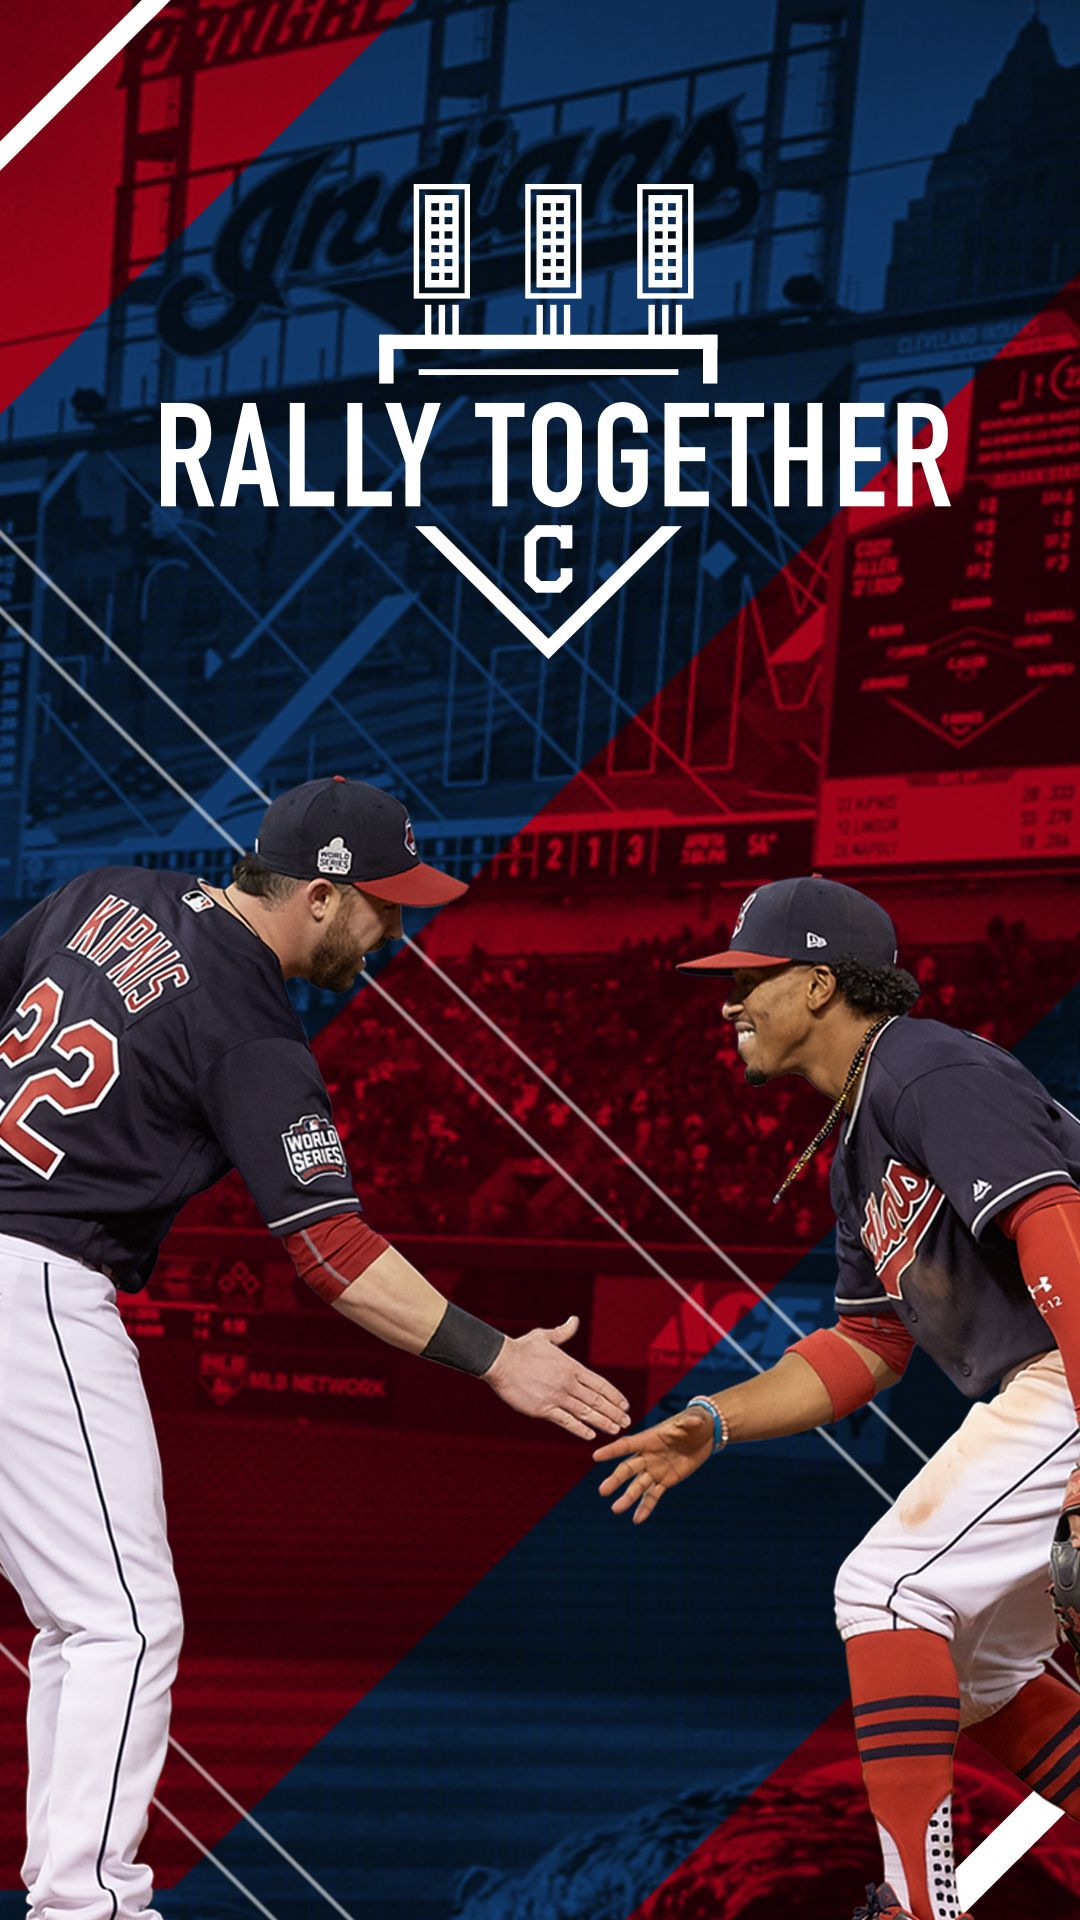 Pin By Amber Ash On Cleveland Bby Cleveland Indians Baseball Cleveland Indians Cleveland Team